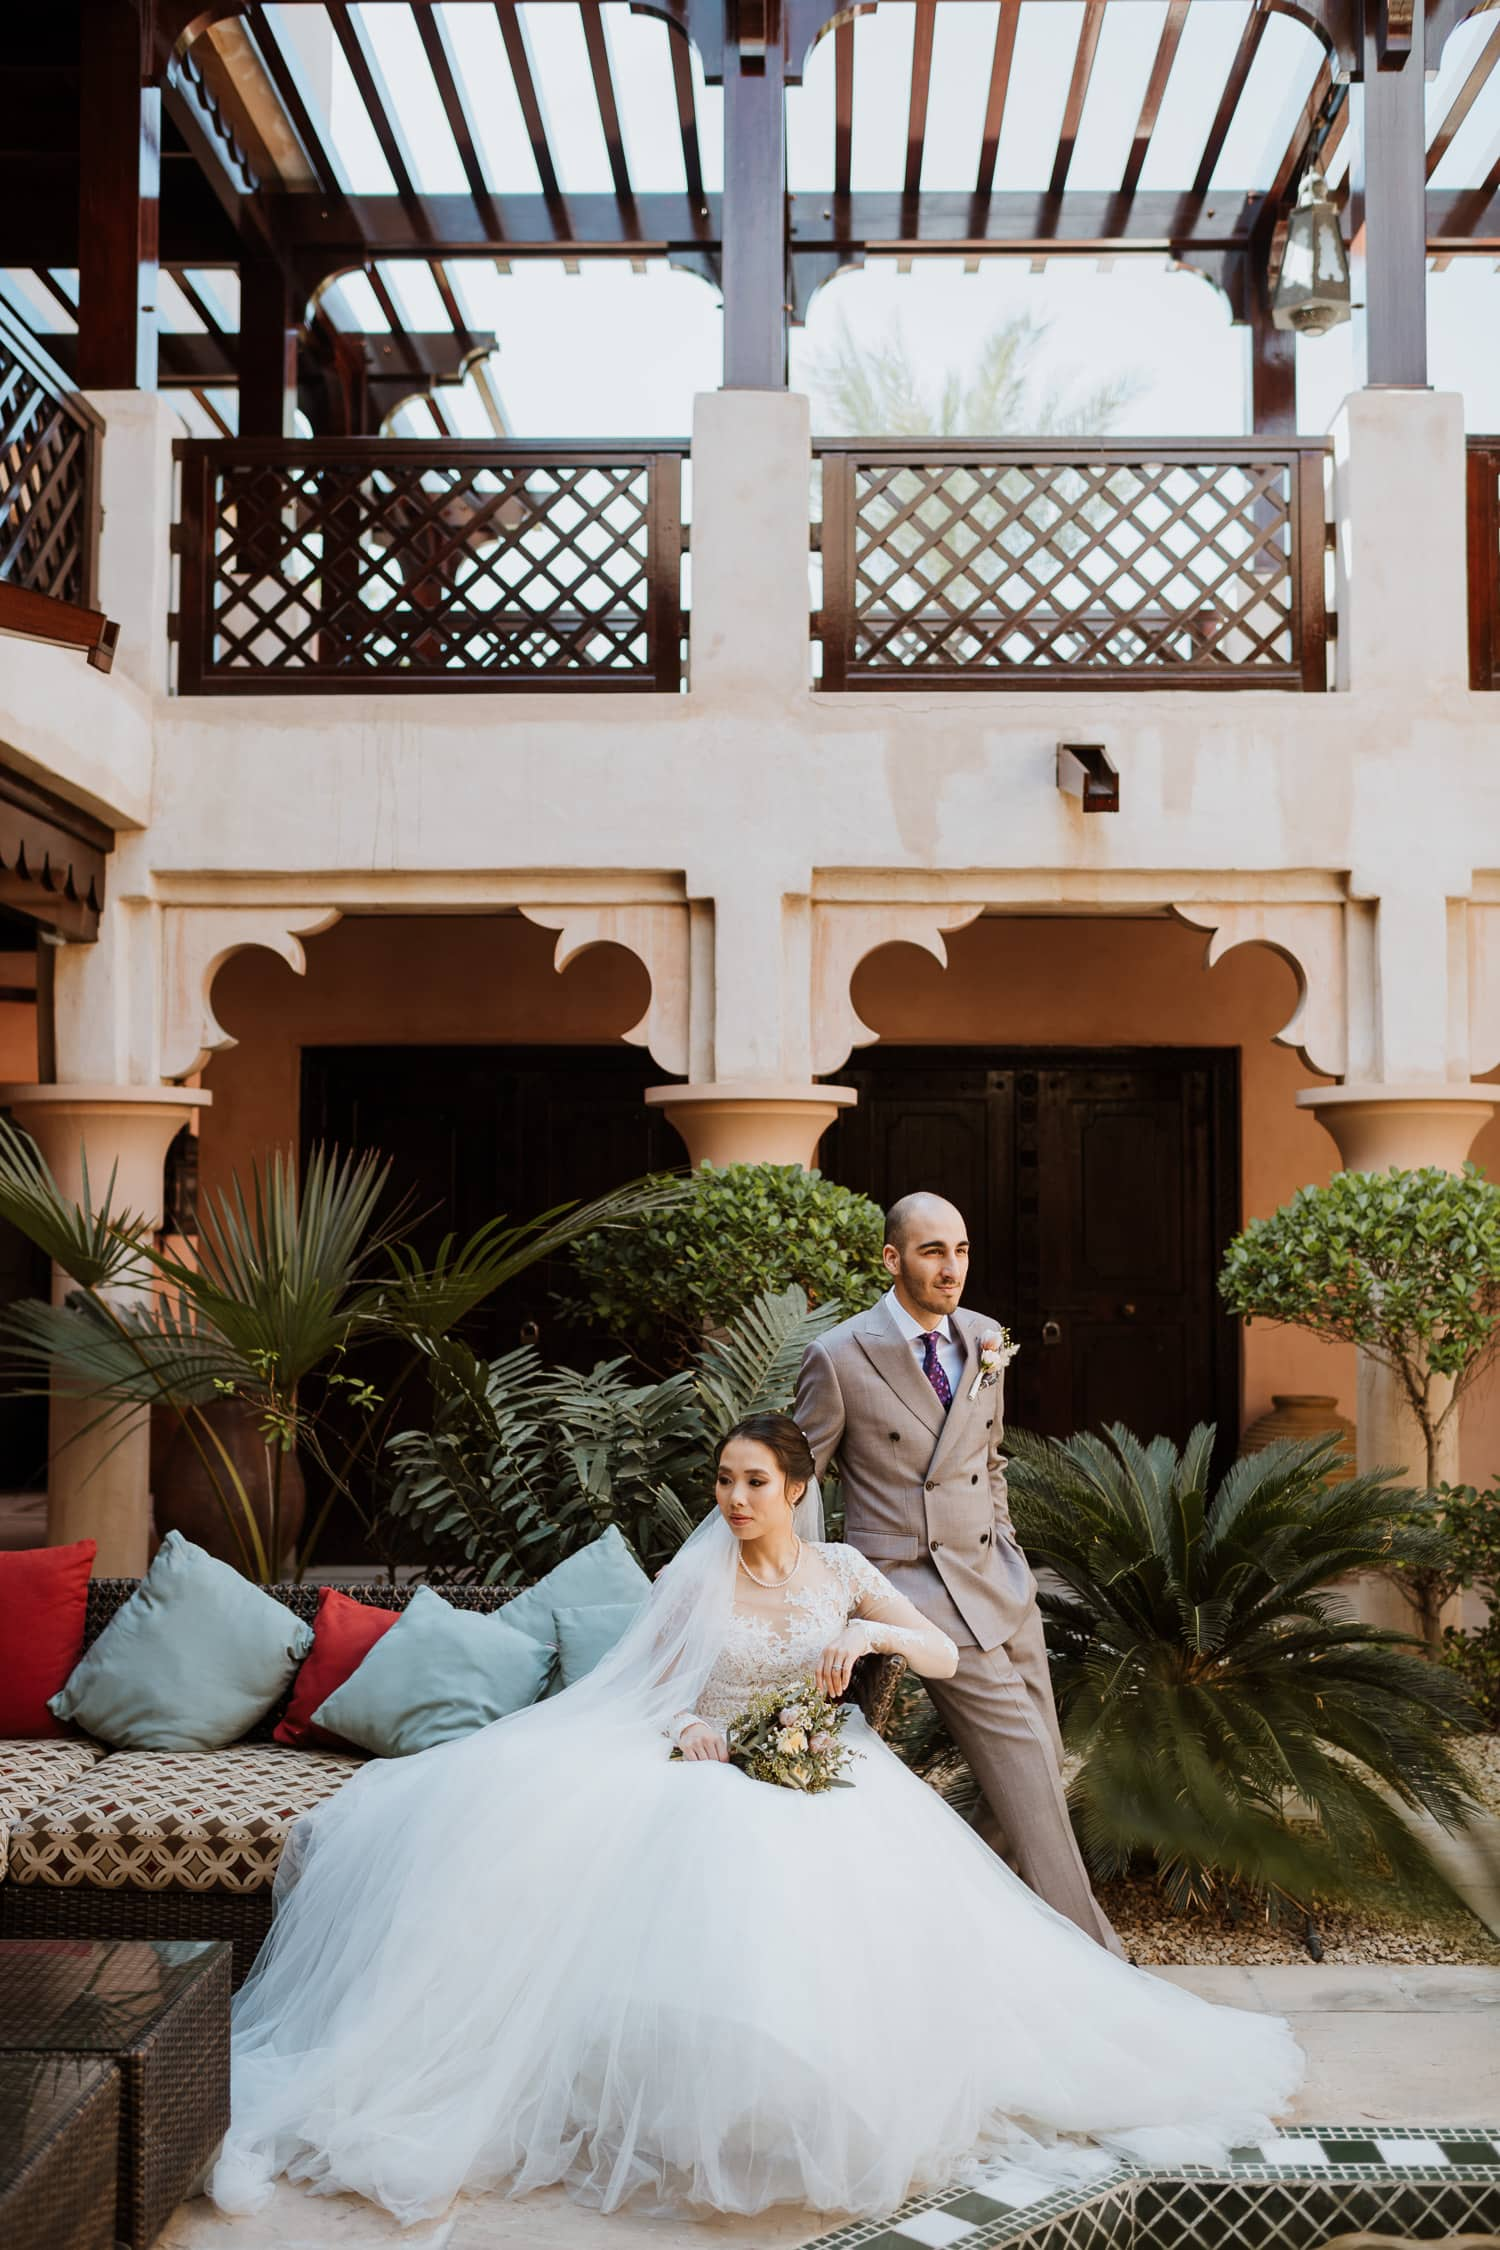 Boho Chic Wedding Bride and Groom Courtyard Jumeirah Al Qasr Dubai